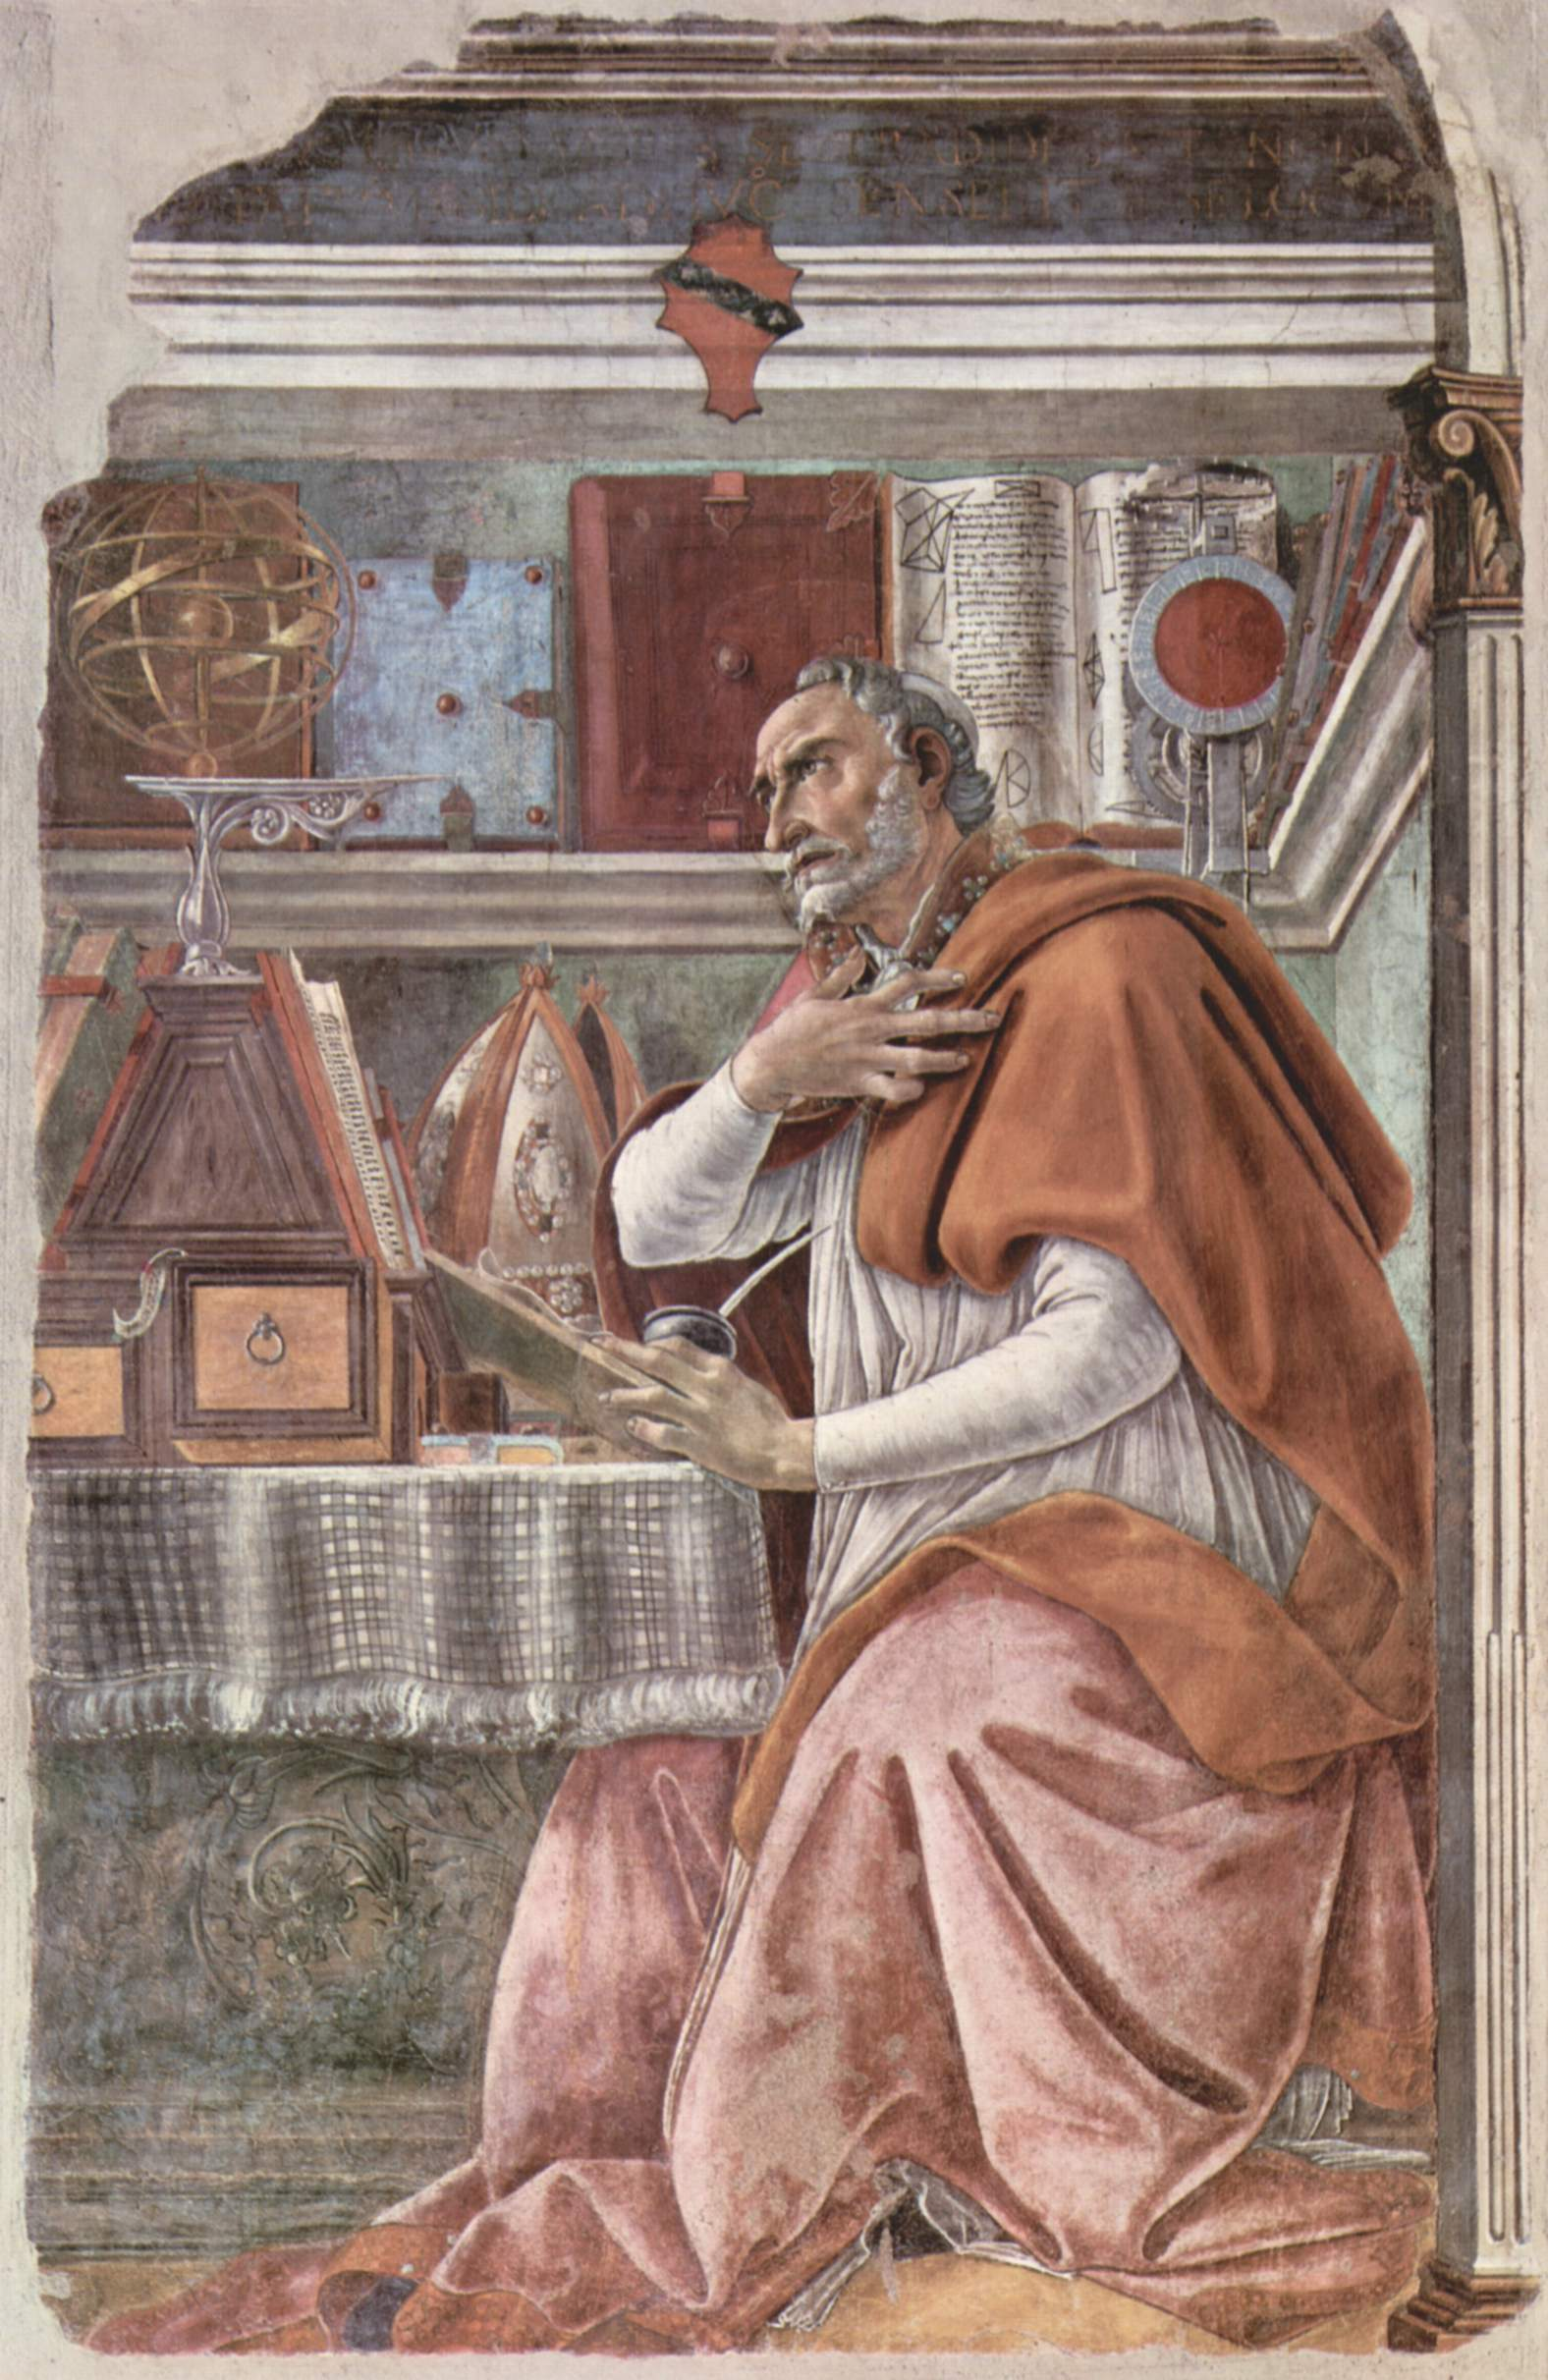 plato and aristotle influence augustine and aquinas Augustine did not distinguish between philosophy and theology while aquinas clearly distinguished between them perhaps influenced by his embracement of the thoughts and writings of aristotle and plato and deeply involved in unifying them with the catholic dogma.